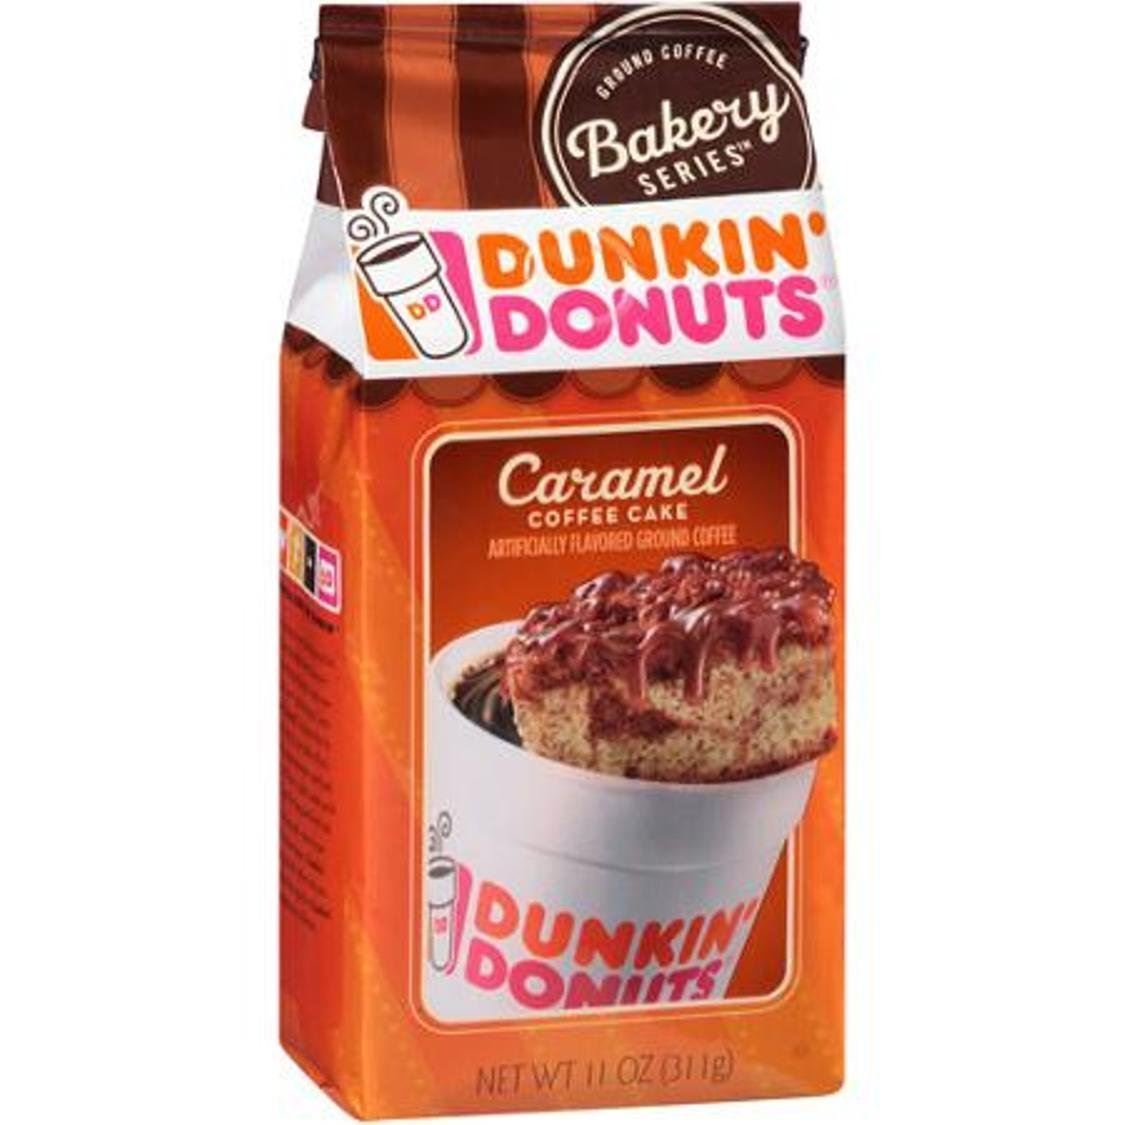 Dunkin Donuts Flavored Coffee